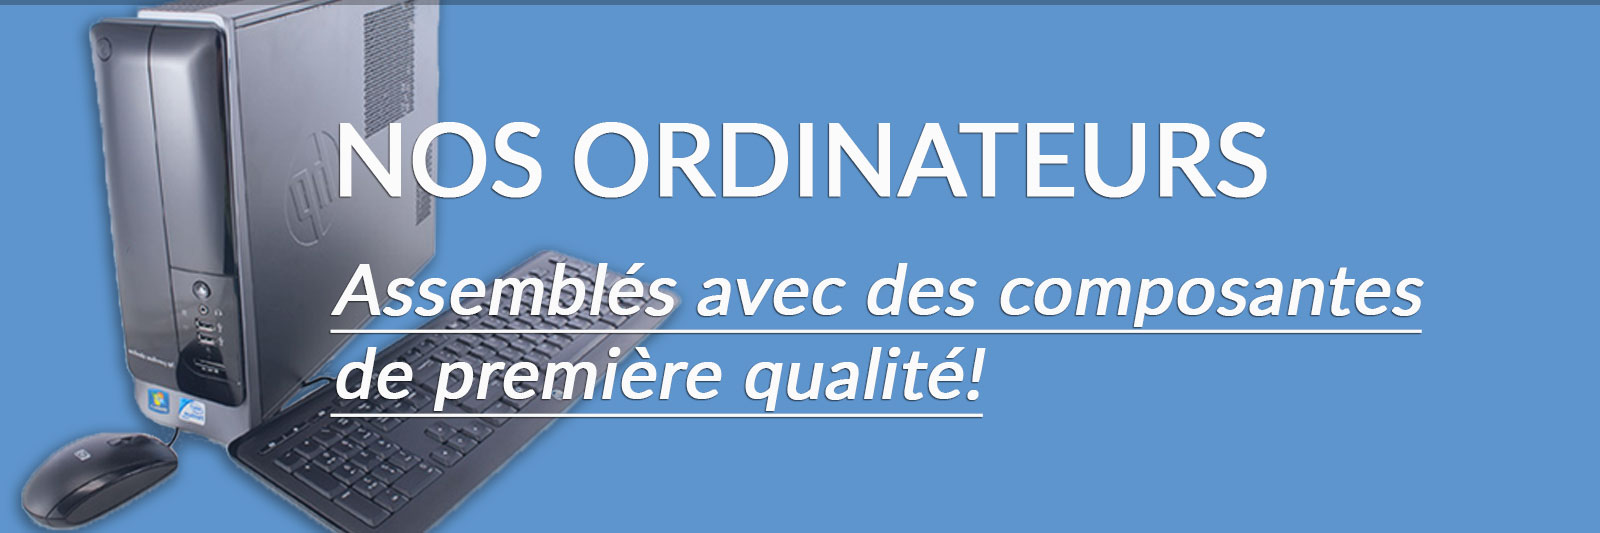 nos ordinateurs